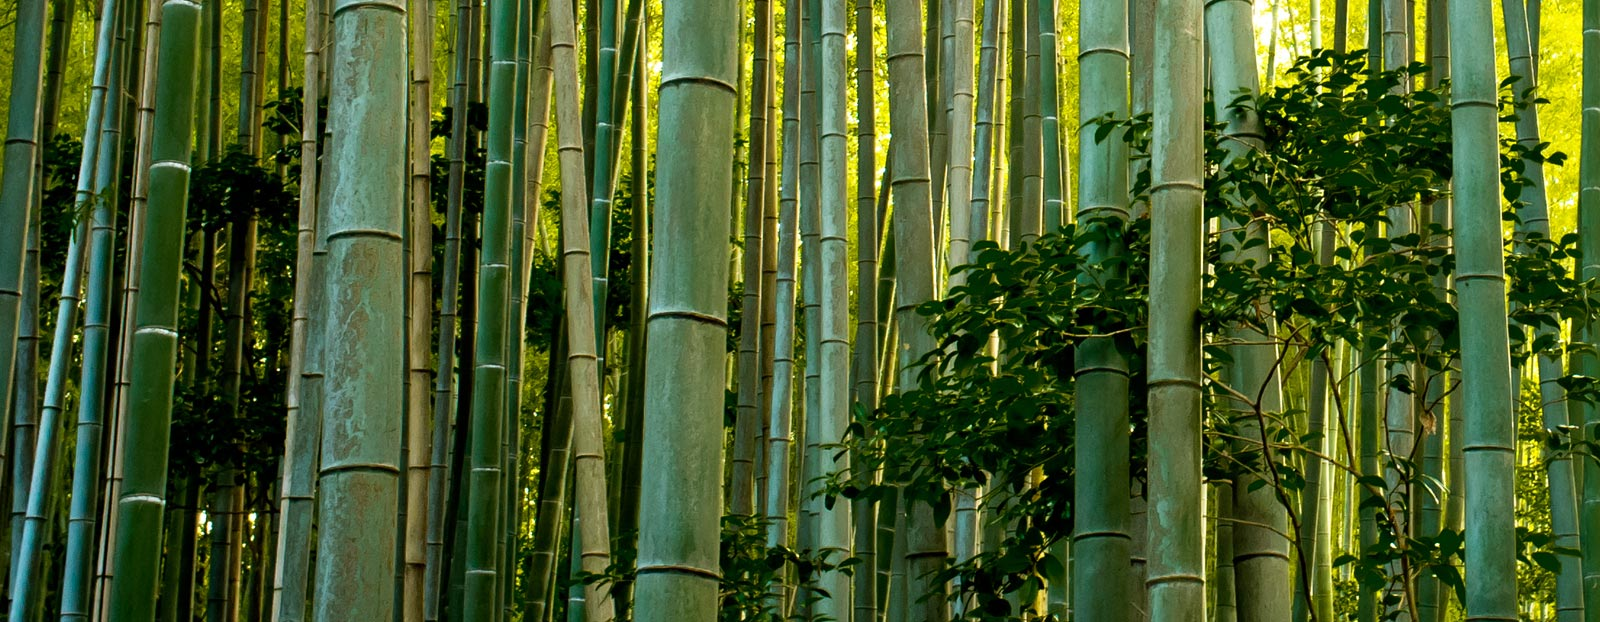 Bamboo in its natural habitat